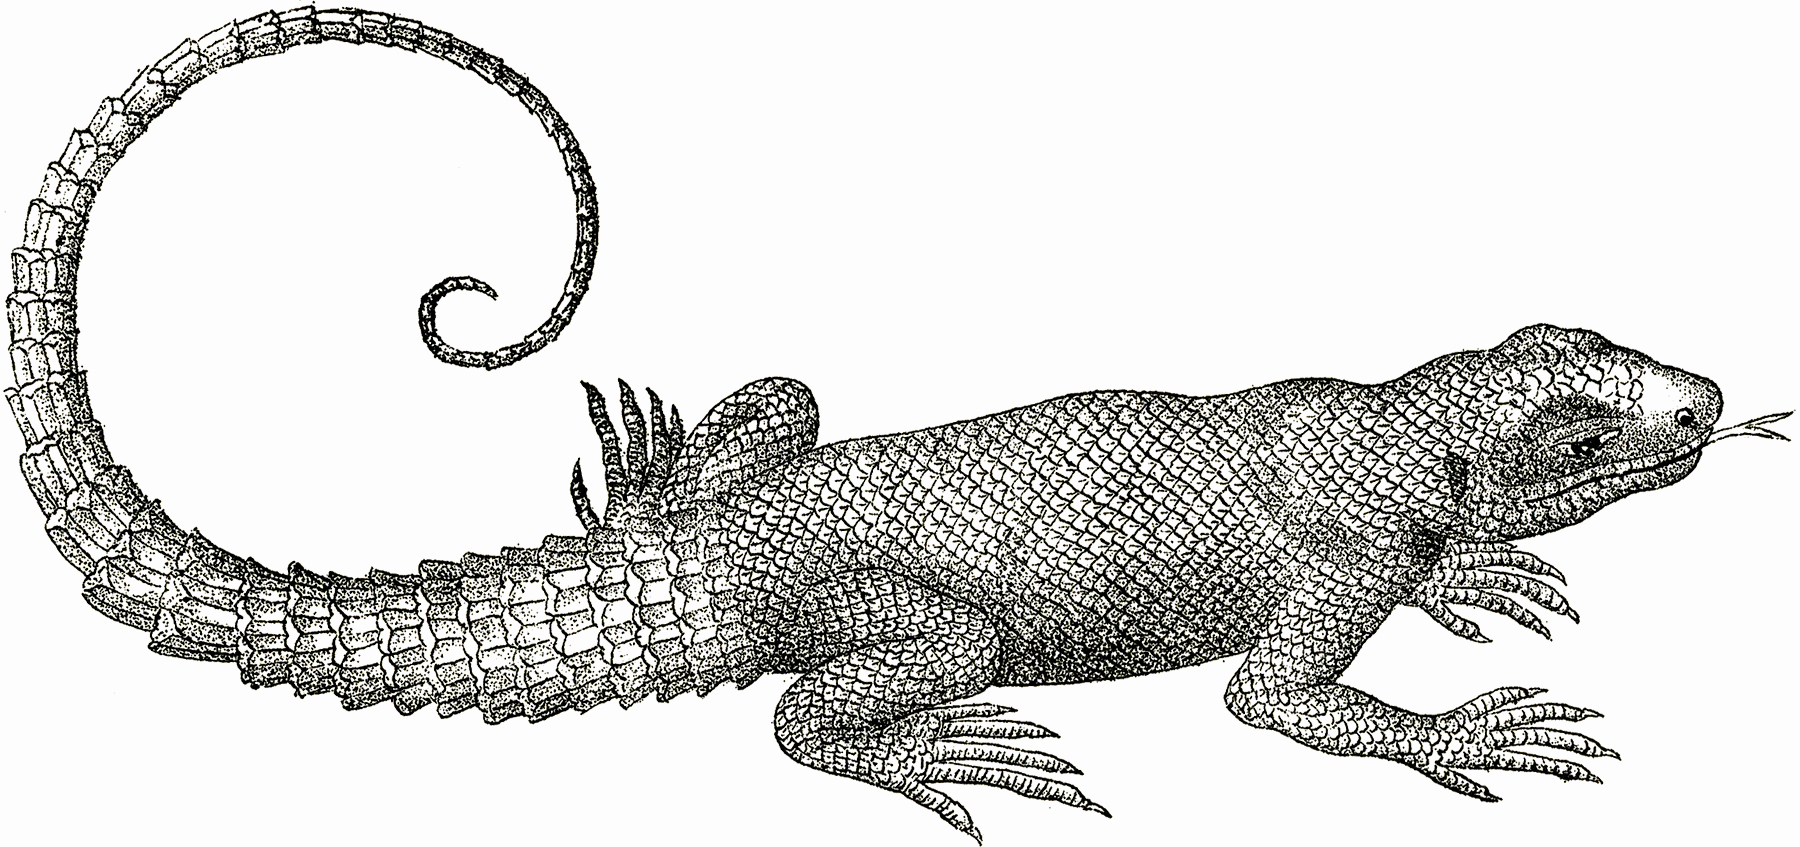 Black and White Illustrations Luxury Free Vintage Lizard Clip Art the Graphics Fairy